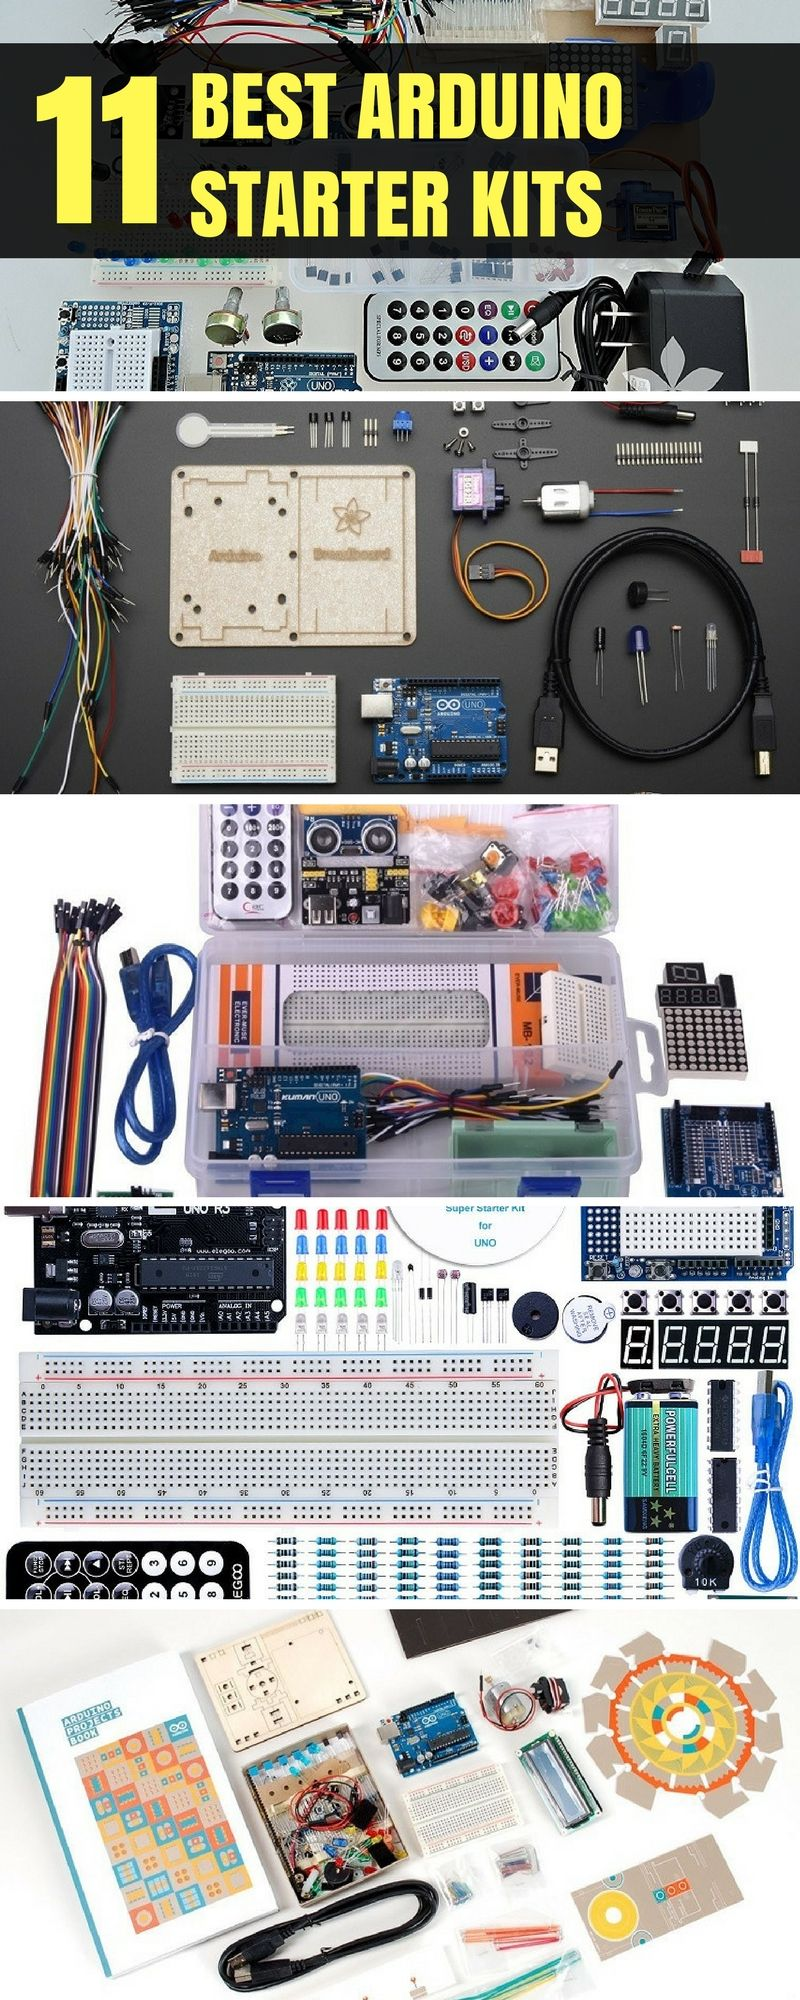 10 best arduino starter kits for beginners [2019 updated] arduinothe first kit in the list is the official arduino starter kit this kit includes several components using which you can make up to 15 projects